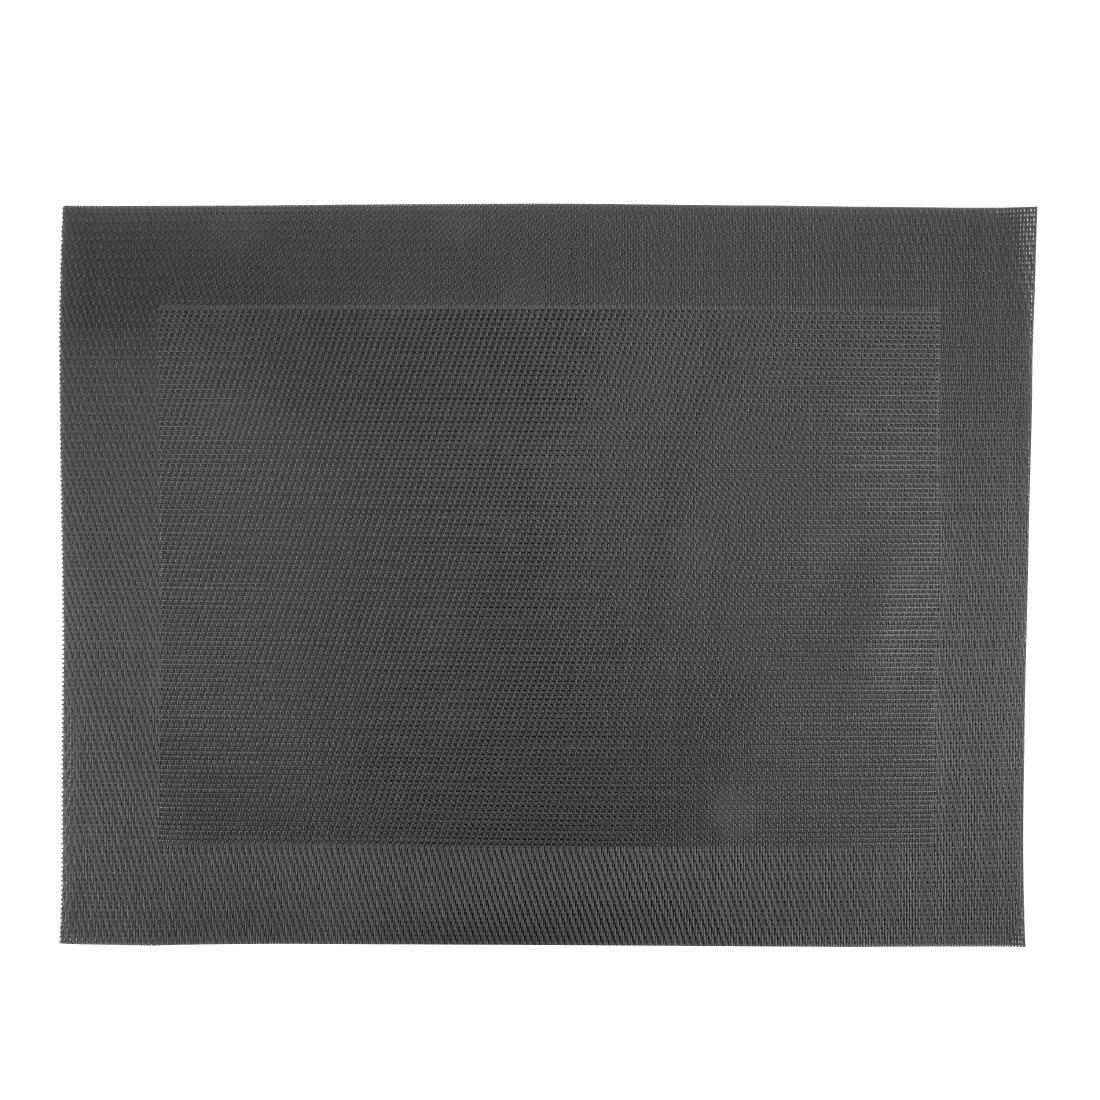 Woven PVC Black Table Mat